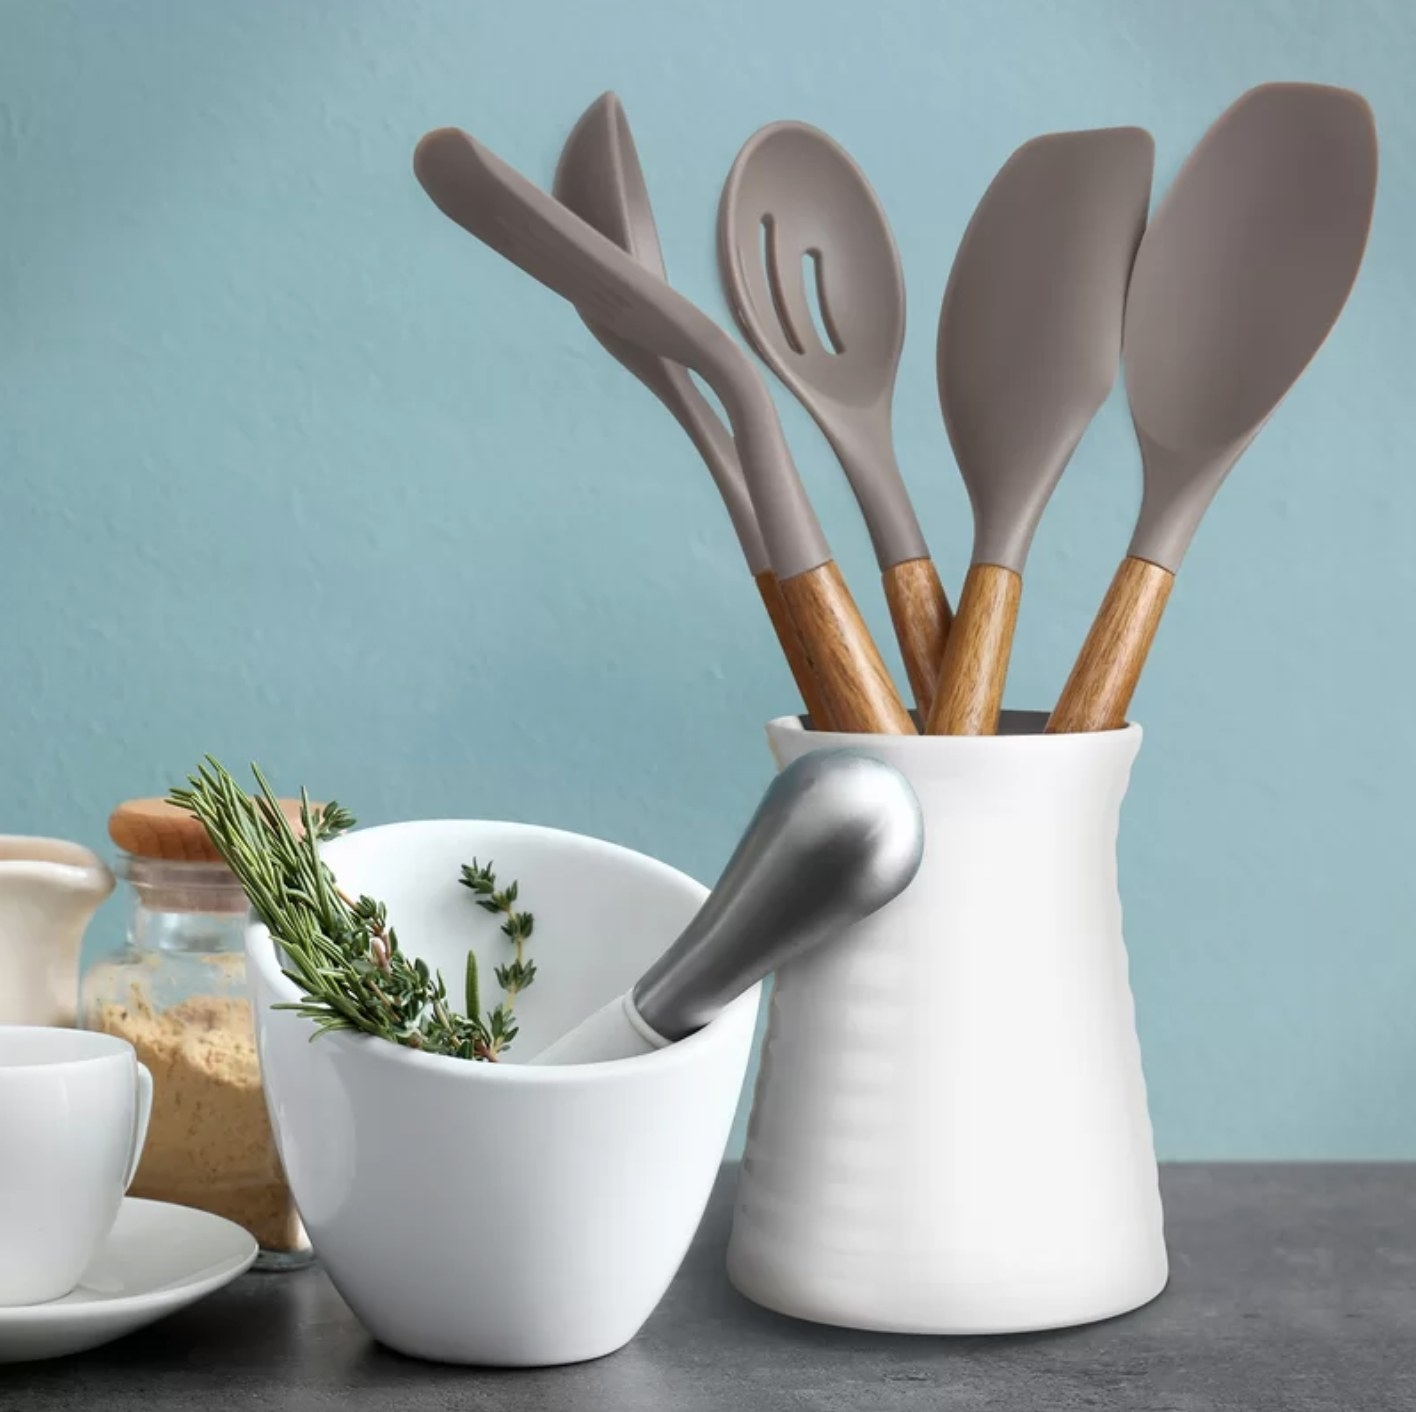 The five-piece non-stick cookware set in gray